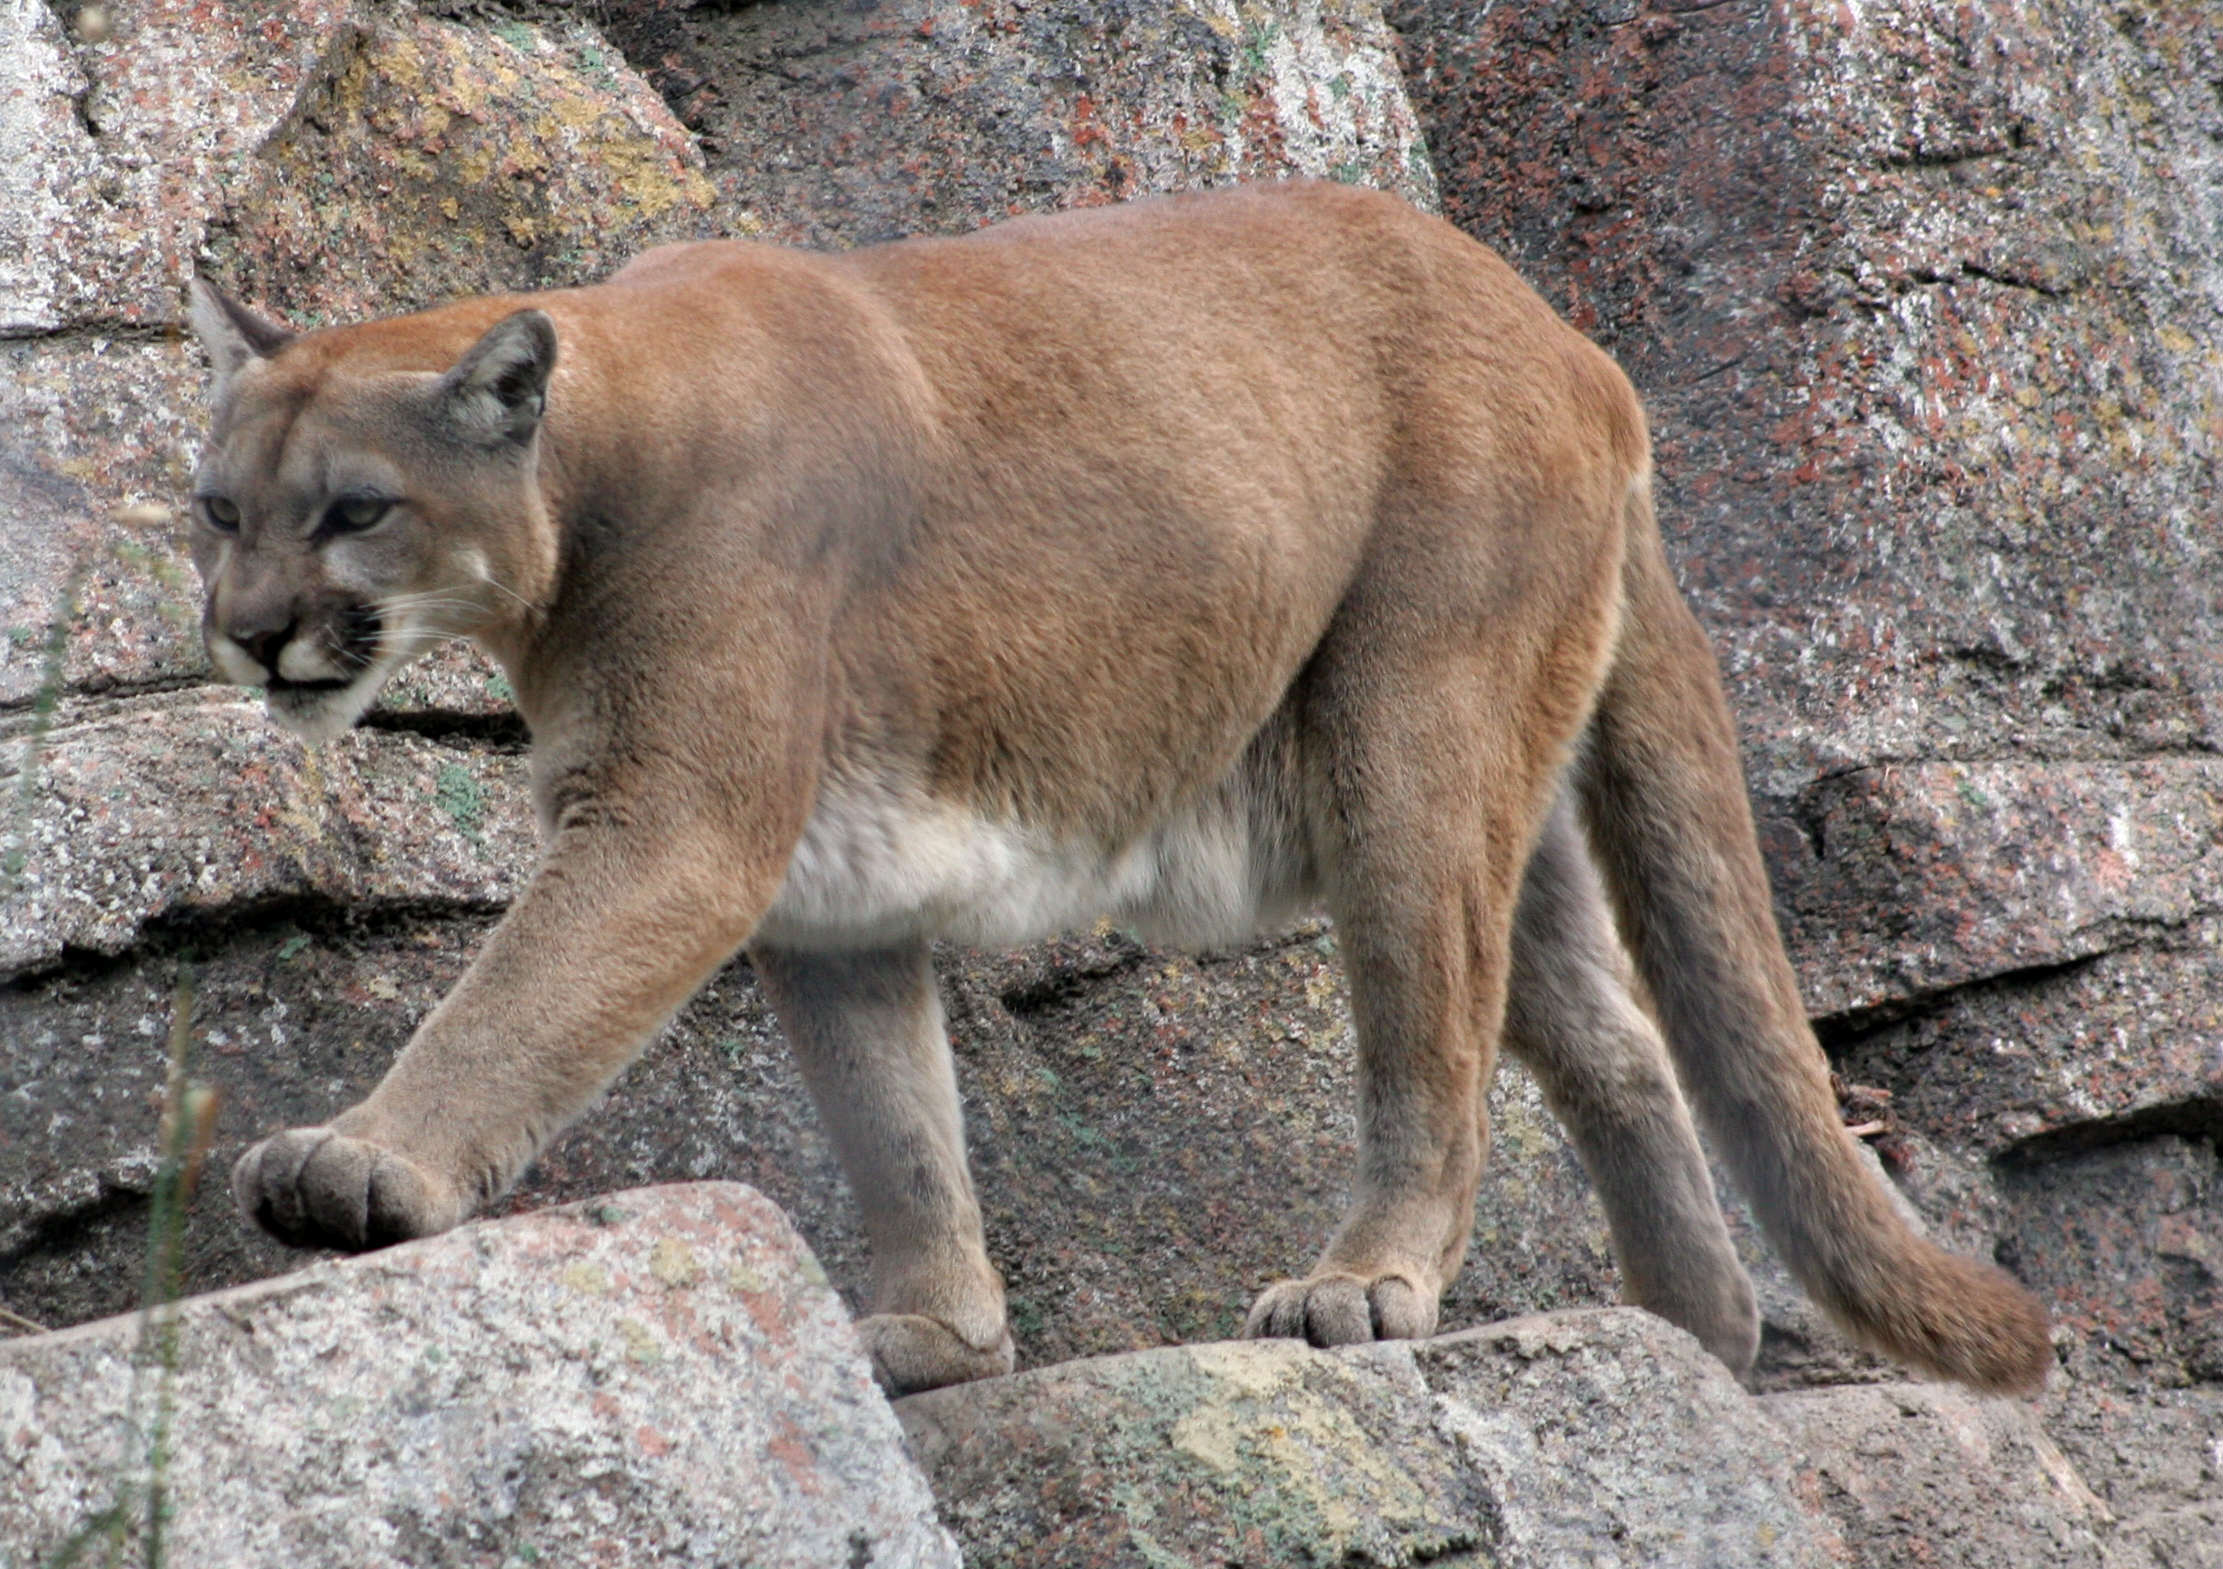 1413305571 800f2cbcc8 o Mum Rescues Five Year Old Son From Jaws Of Mountain Lion